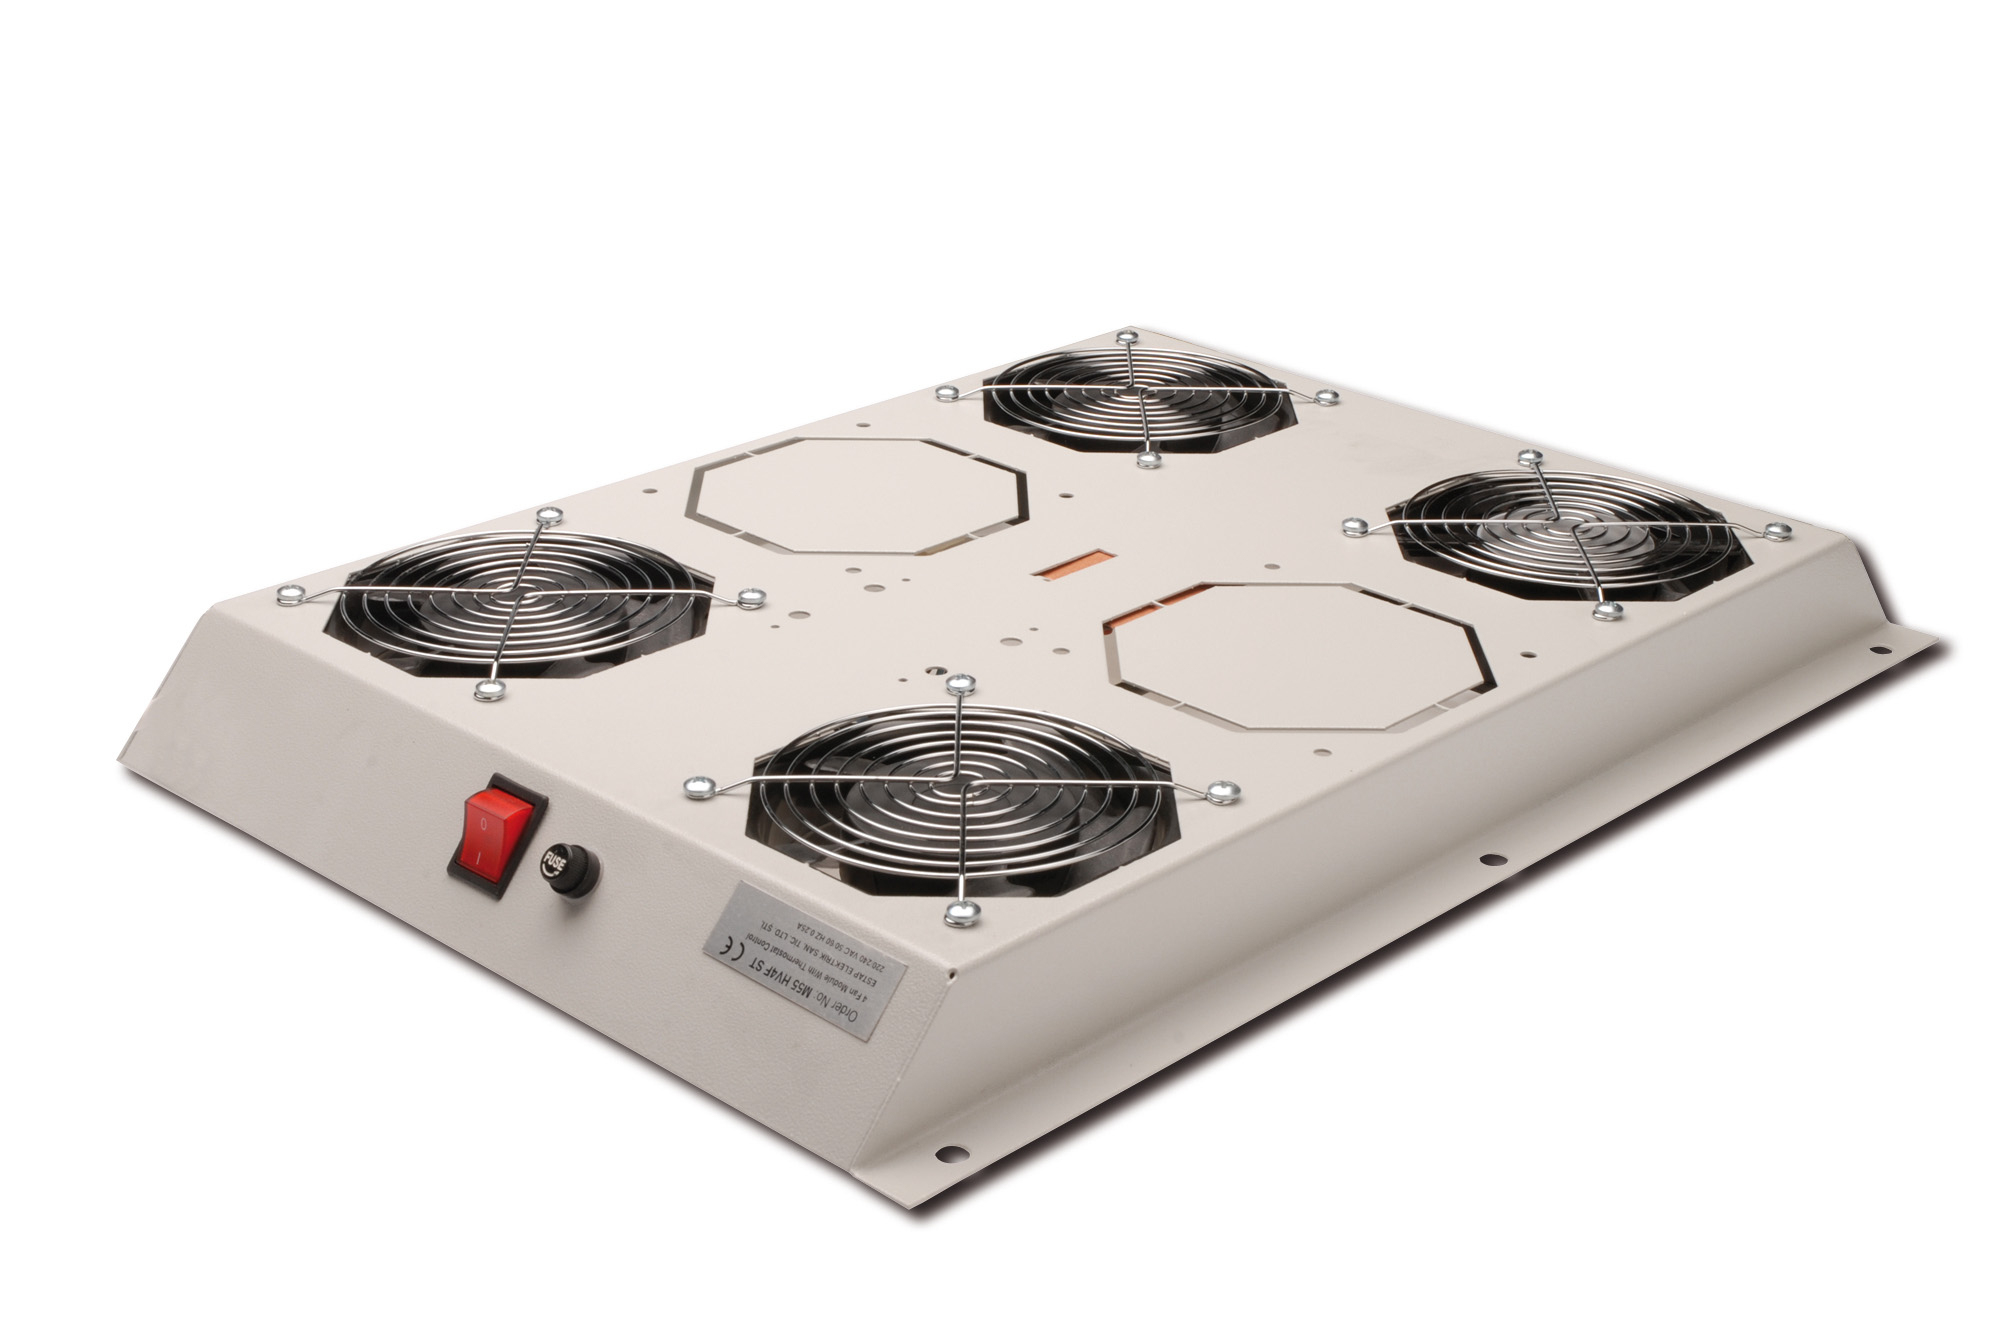 DIGITUS DN-19 FAN-4-SRV HARDWARE COOLING ACCESSORY GREY